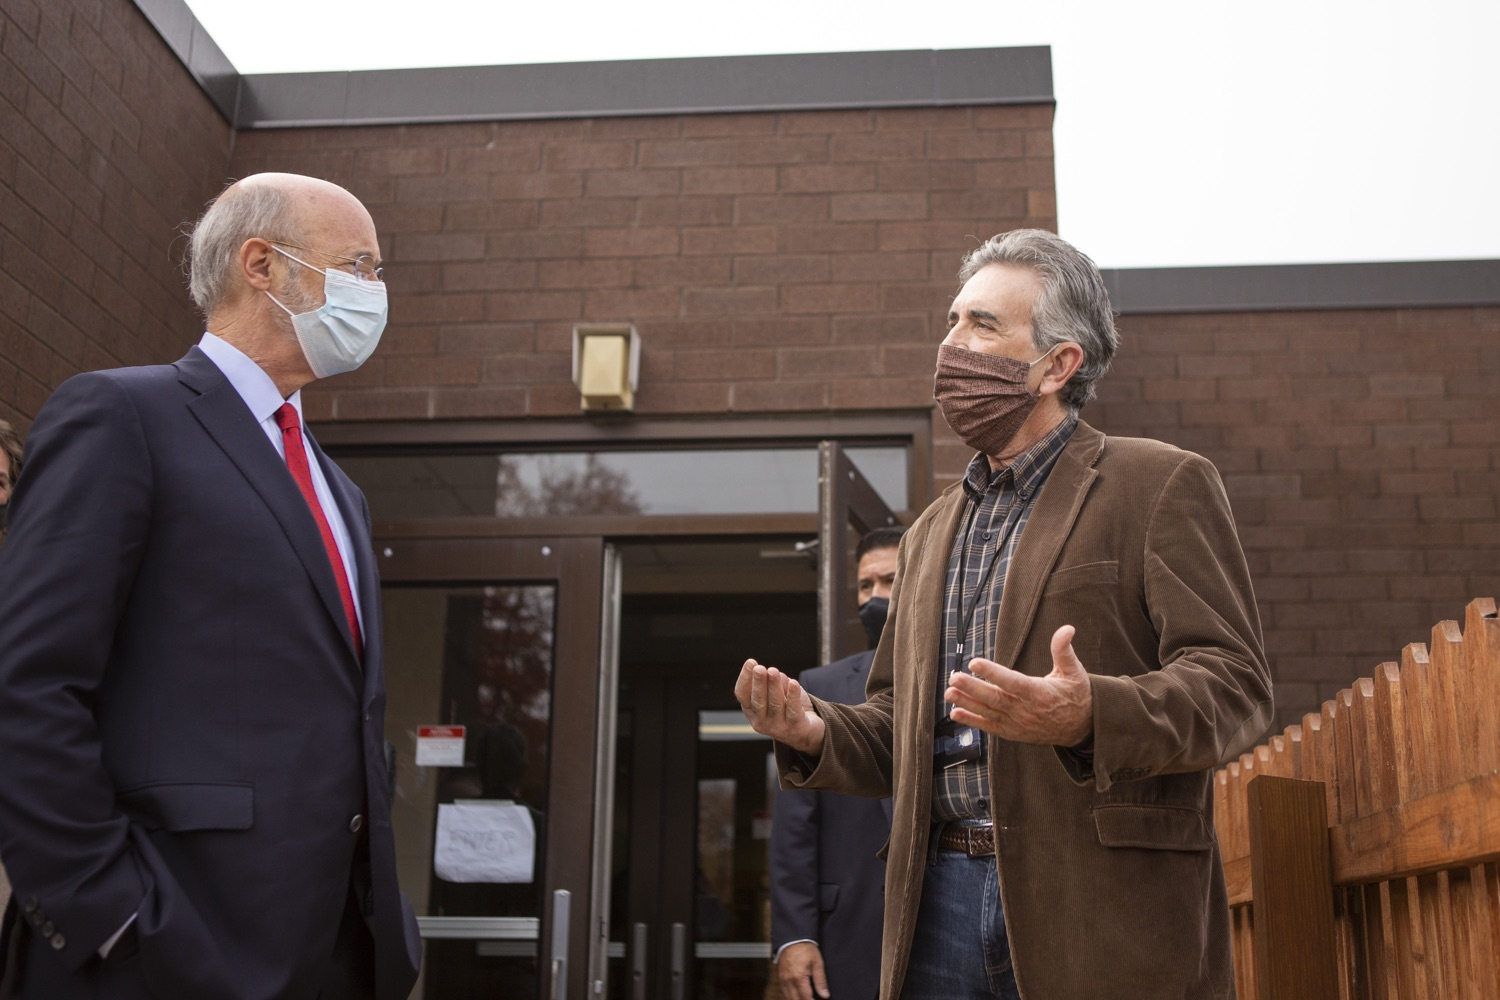 """<a href=""""https://filesource.wostreaming.net/commonwealthofpa/photo/18310_gov_adult_use_cannabis_dz_019.jpg"""" target=""""_blank"""">⇣Download Photo<br></a>Governor Tom Wolf touring The Mountain Center.Governor Tom Wolf visited The Mountain Center in Tobyhanna, Monroe County today to talk about the economic growth potential and restorative justice benefits of legalizing adult-use cannabis, something the state General Assembly has not yet done despite multiple requests from the governor and Lieutenant Governor John Fetterman to take up legislation this fall.  Tobyhanna, PA  October 13, 2020"""